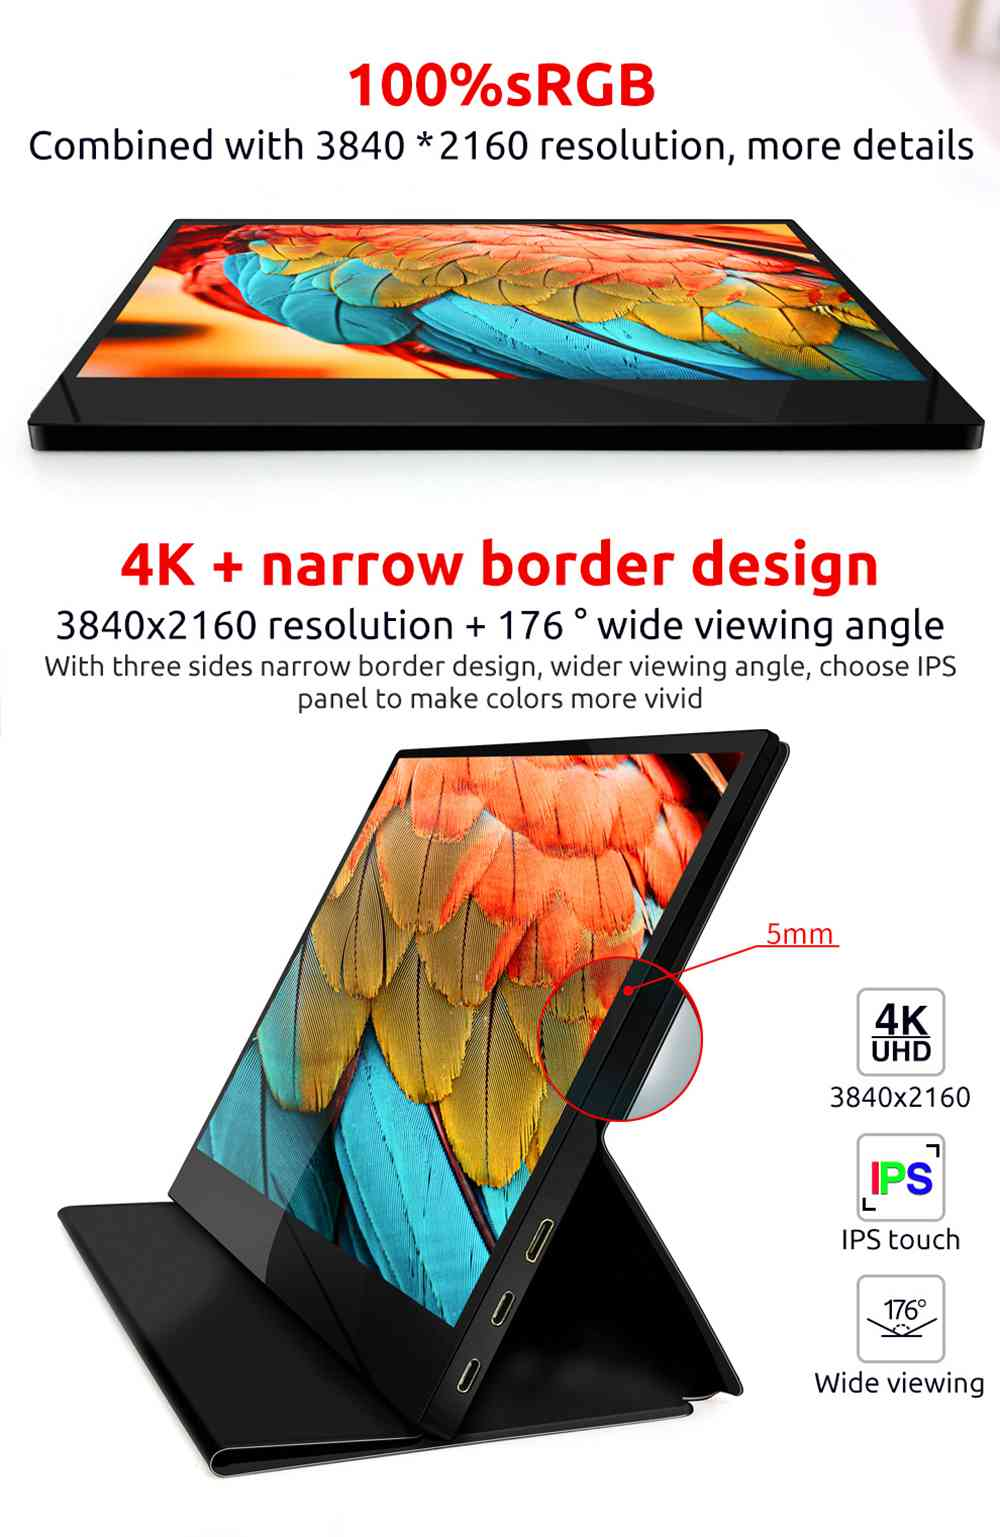 AOSIMAN ASM-125UC Portable Monitor 12.5 inch IPS Touch Screen 100% sRGB HDR 4K Full Metal Body Dual type-C+mini HDMI